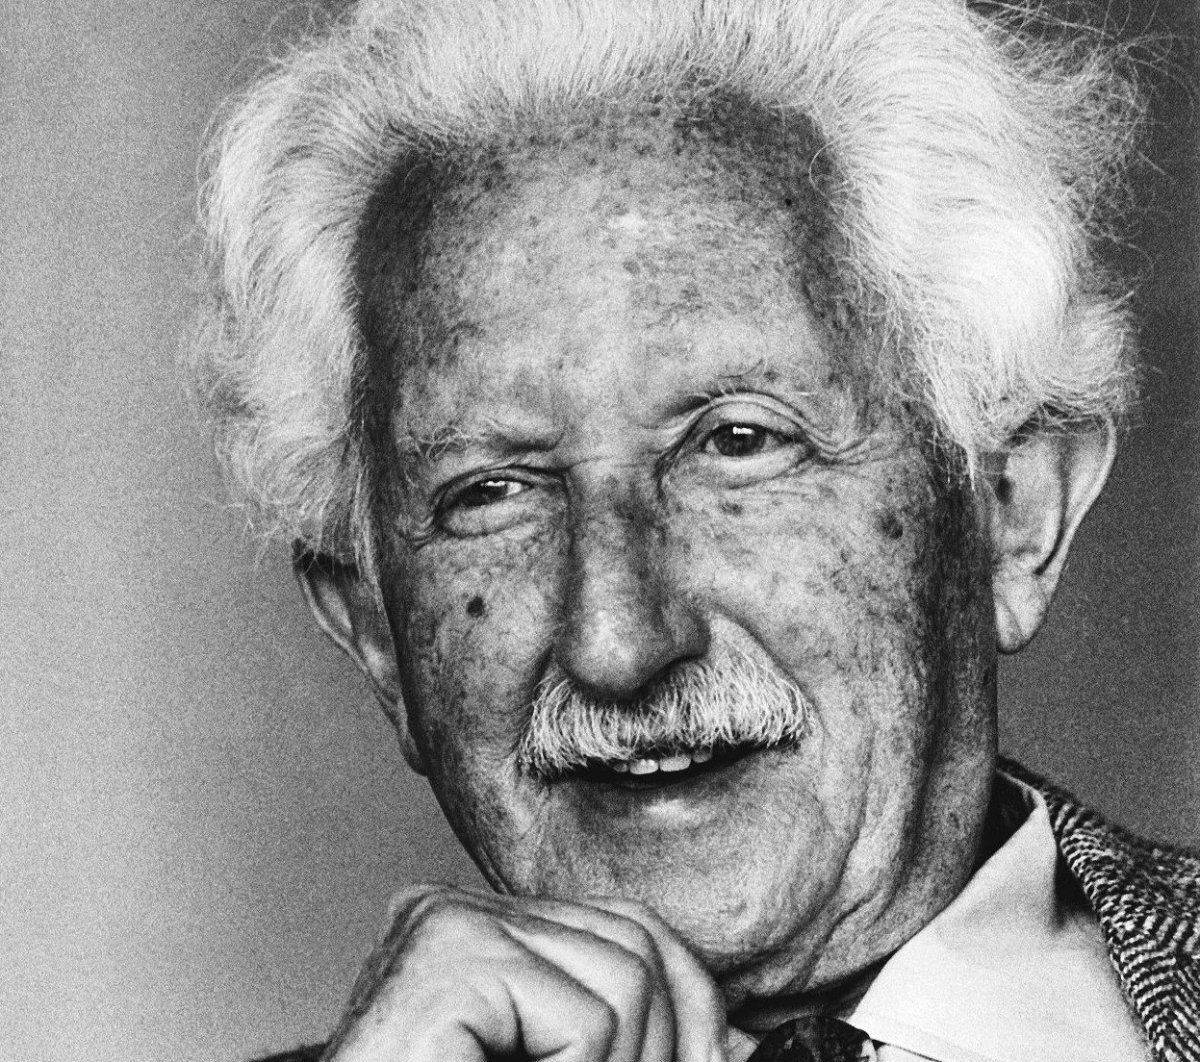 The Psychosocial Theories of Erik Erikson: A Basic Understanding